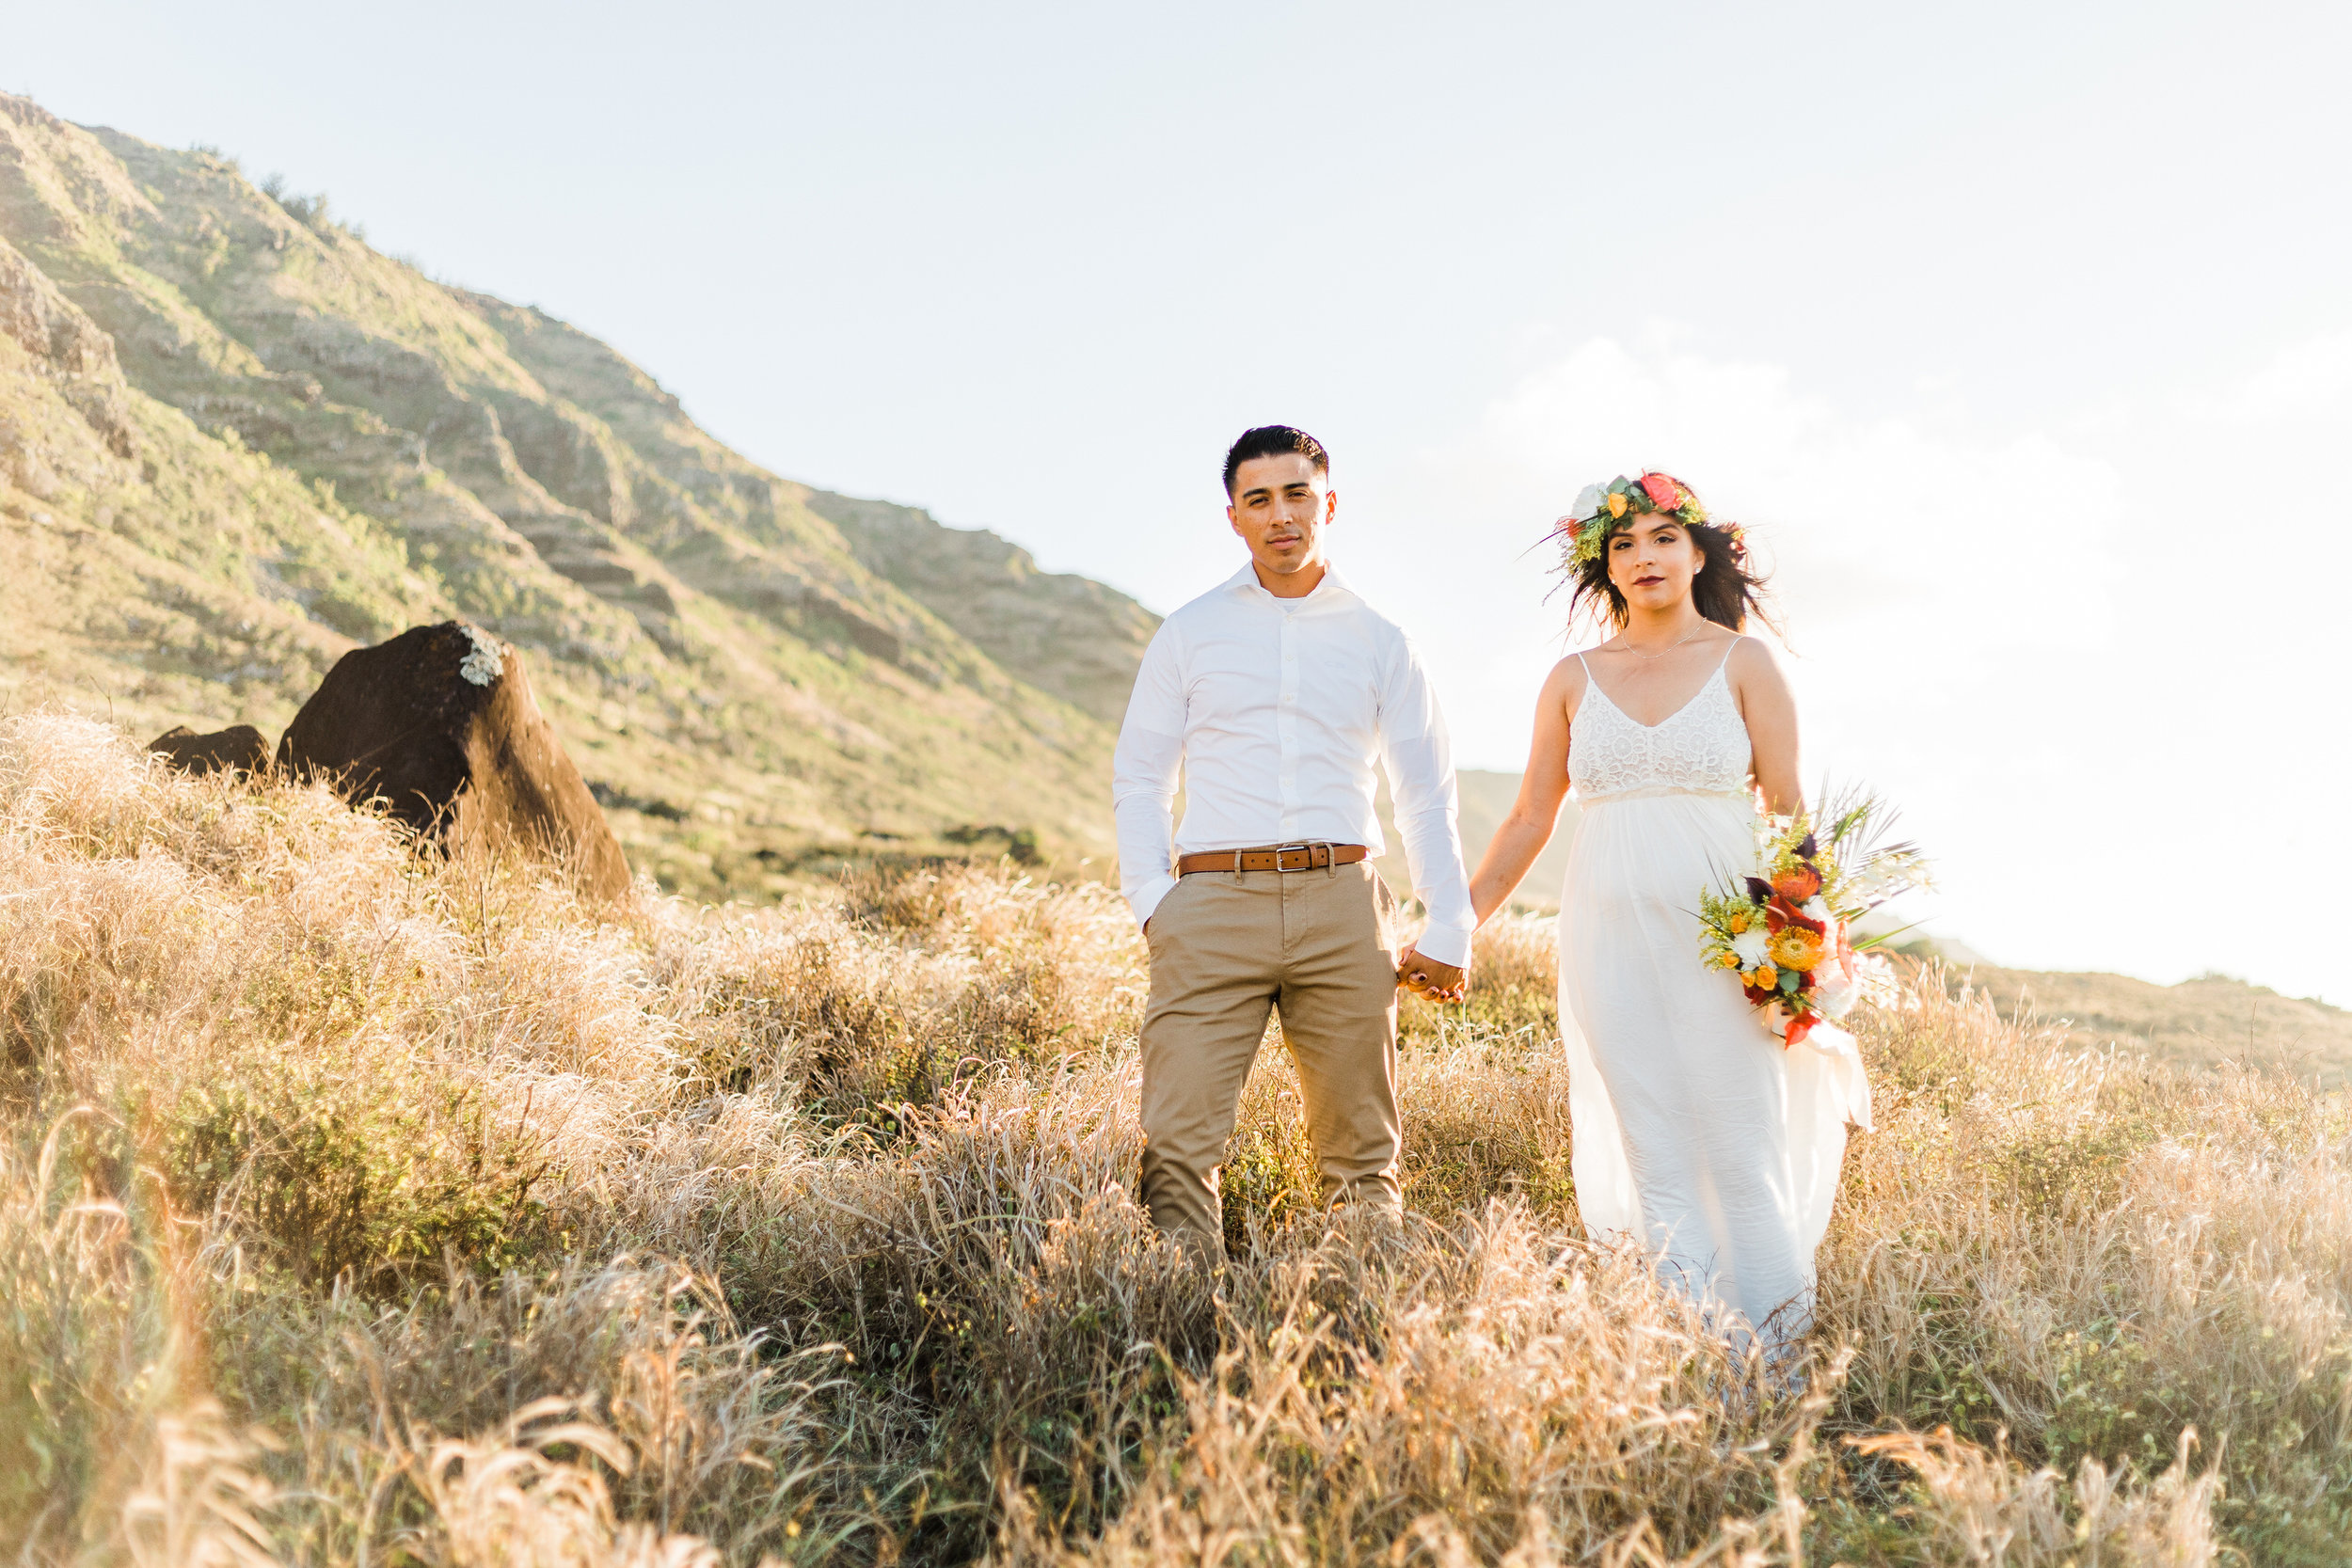 intimate-elopement-sunset-oahu-haku-8.jpg